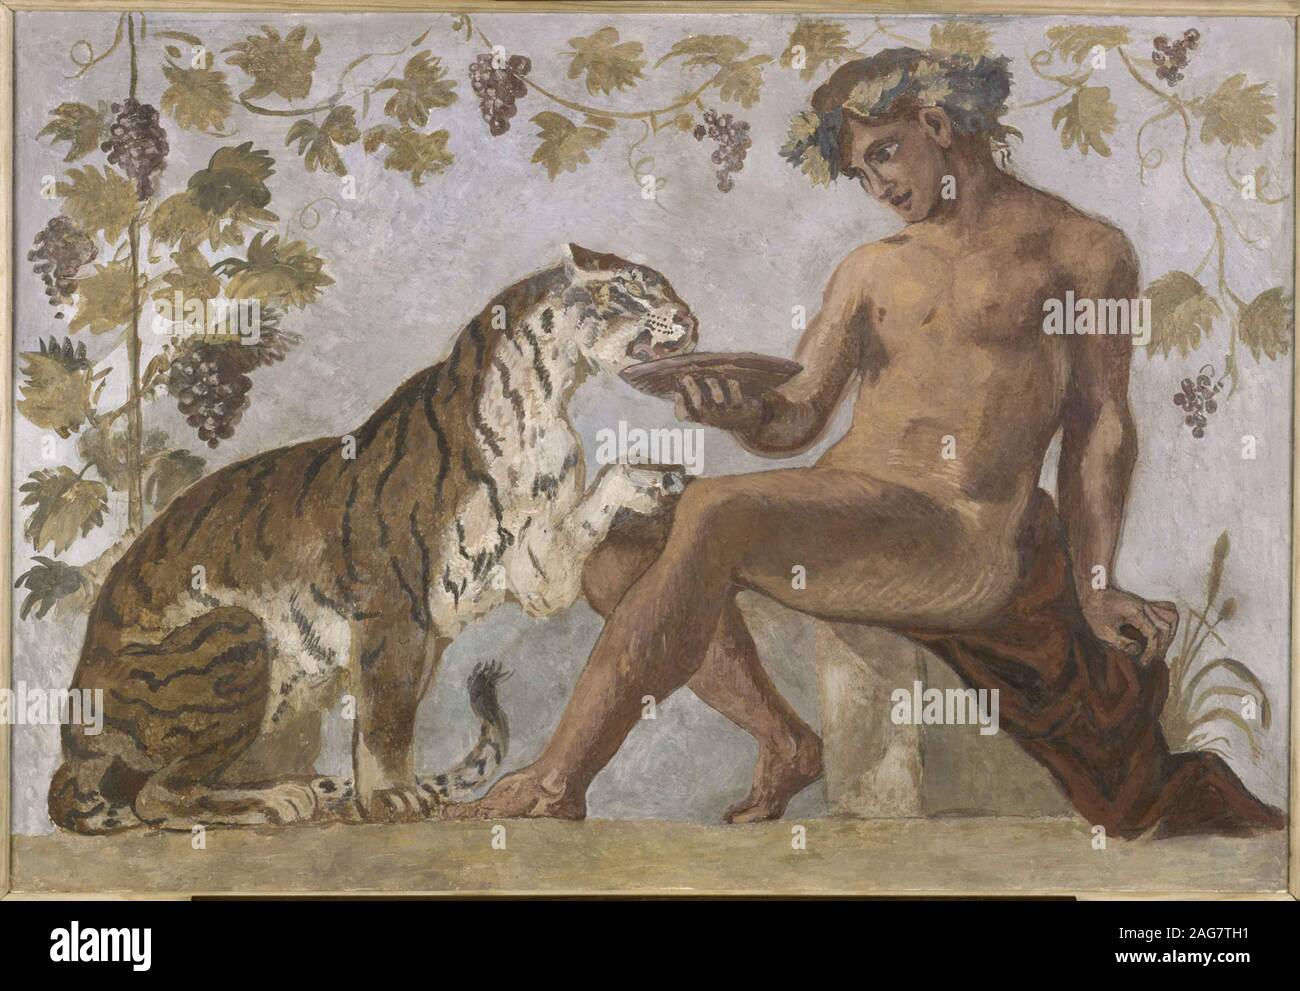 Bacchus with a tiger, 1834. Found in the Collection of Musée National Eugène Delacroix. Stock Photo